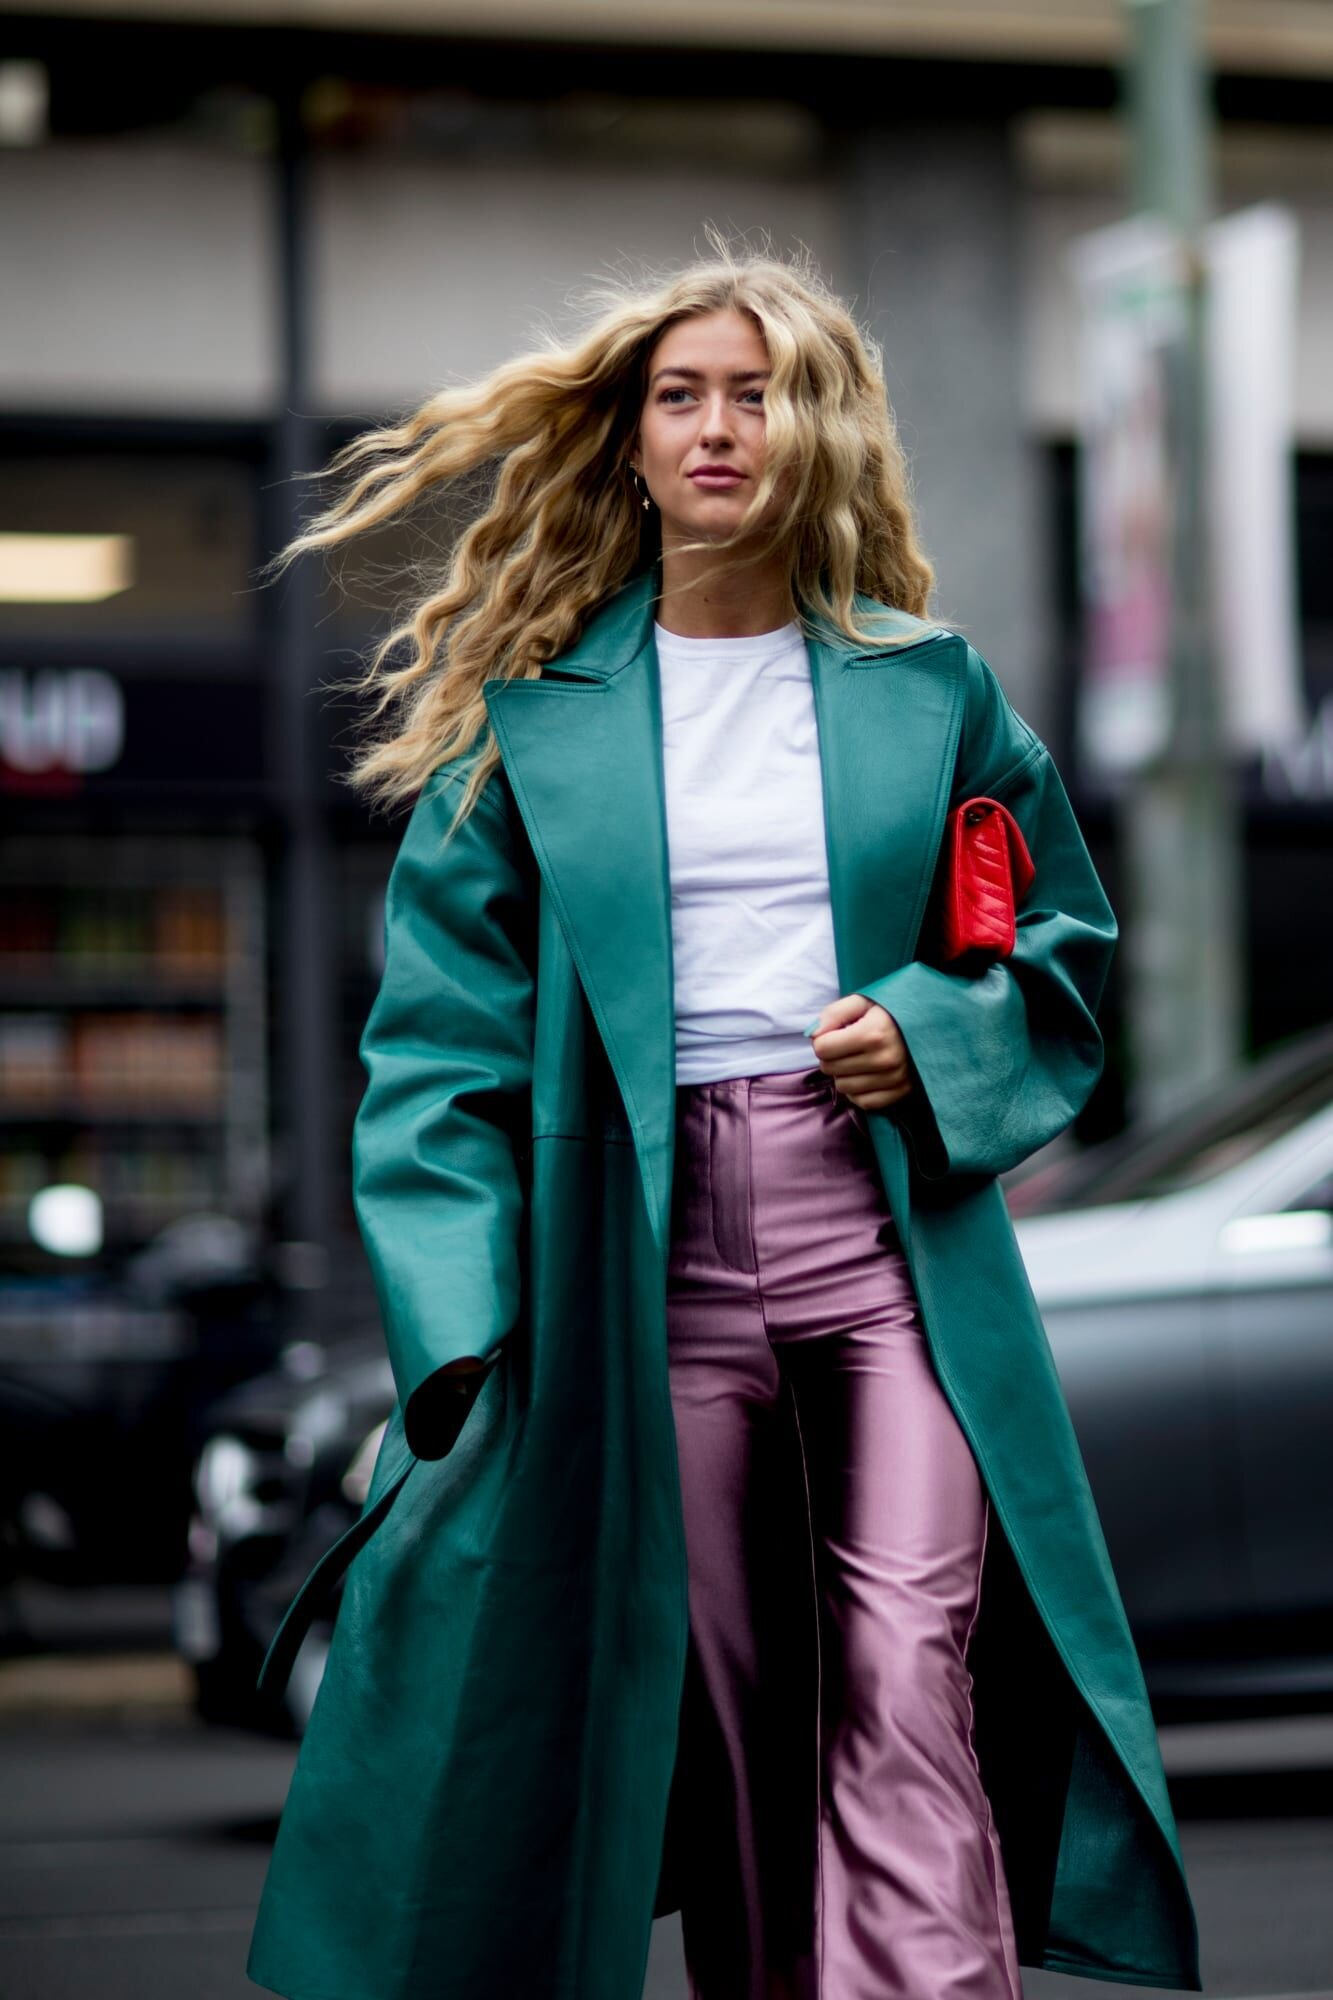 The 24 Best Beauty Street Style Looks From Milan Fashion Week.jpg